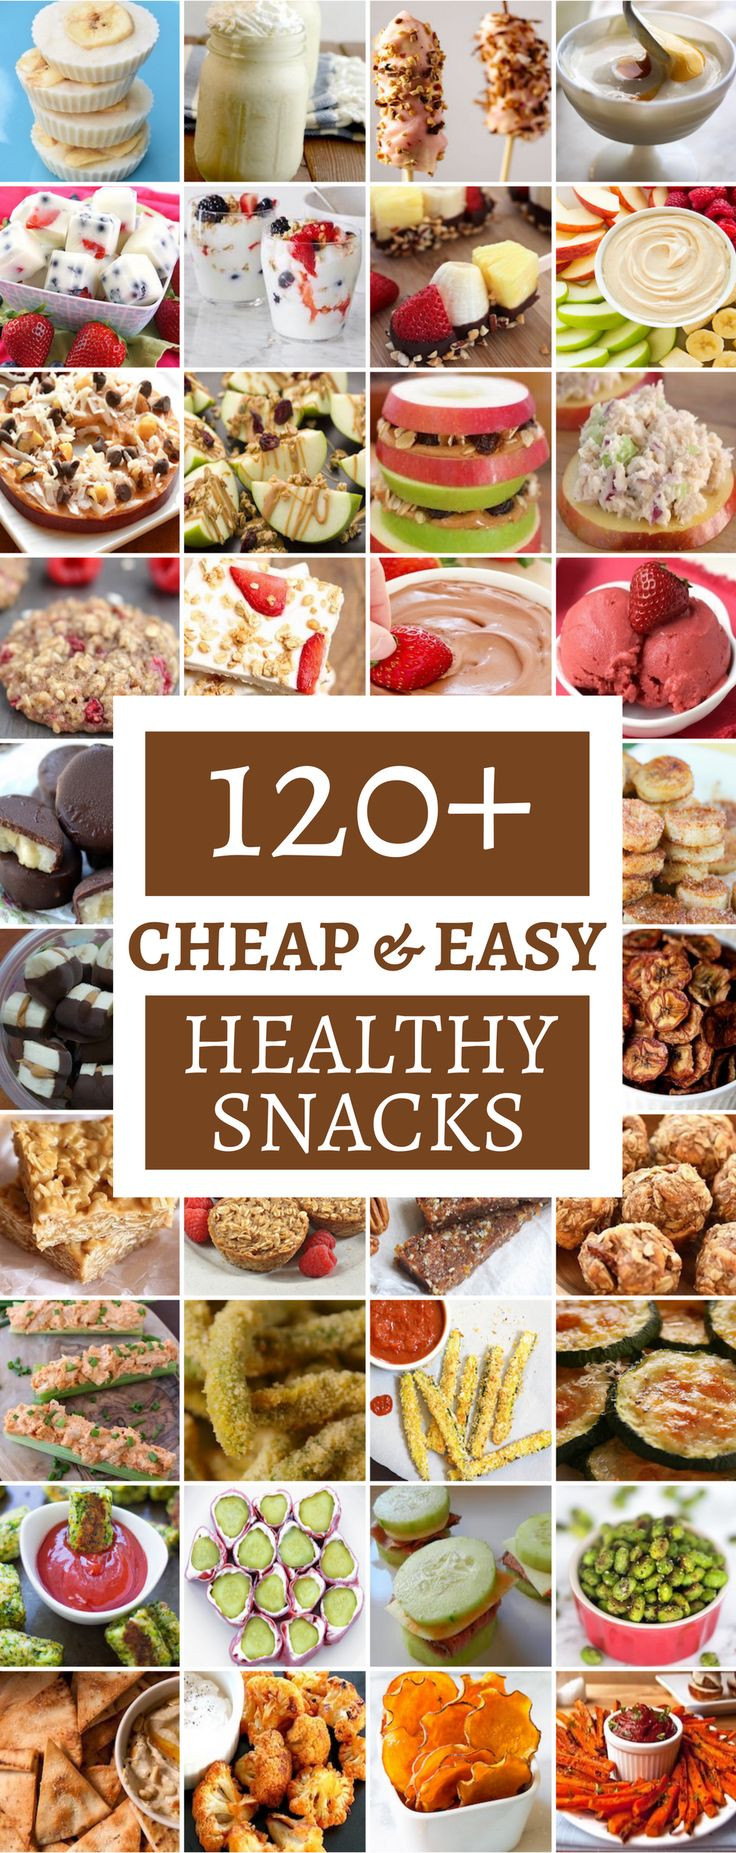 Cheap And Healthy Snacks  Best 25 Cheap healthy snacks ideas on Pinterest